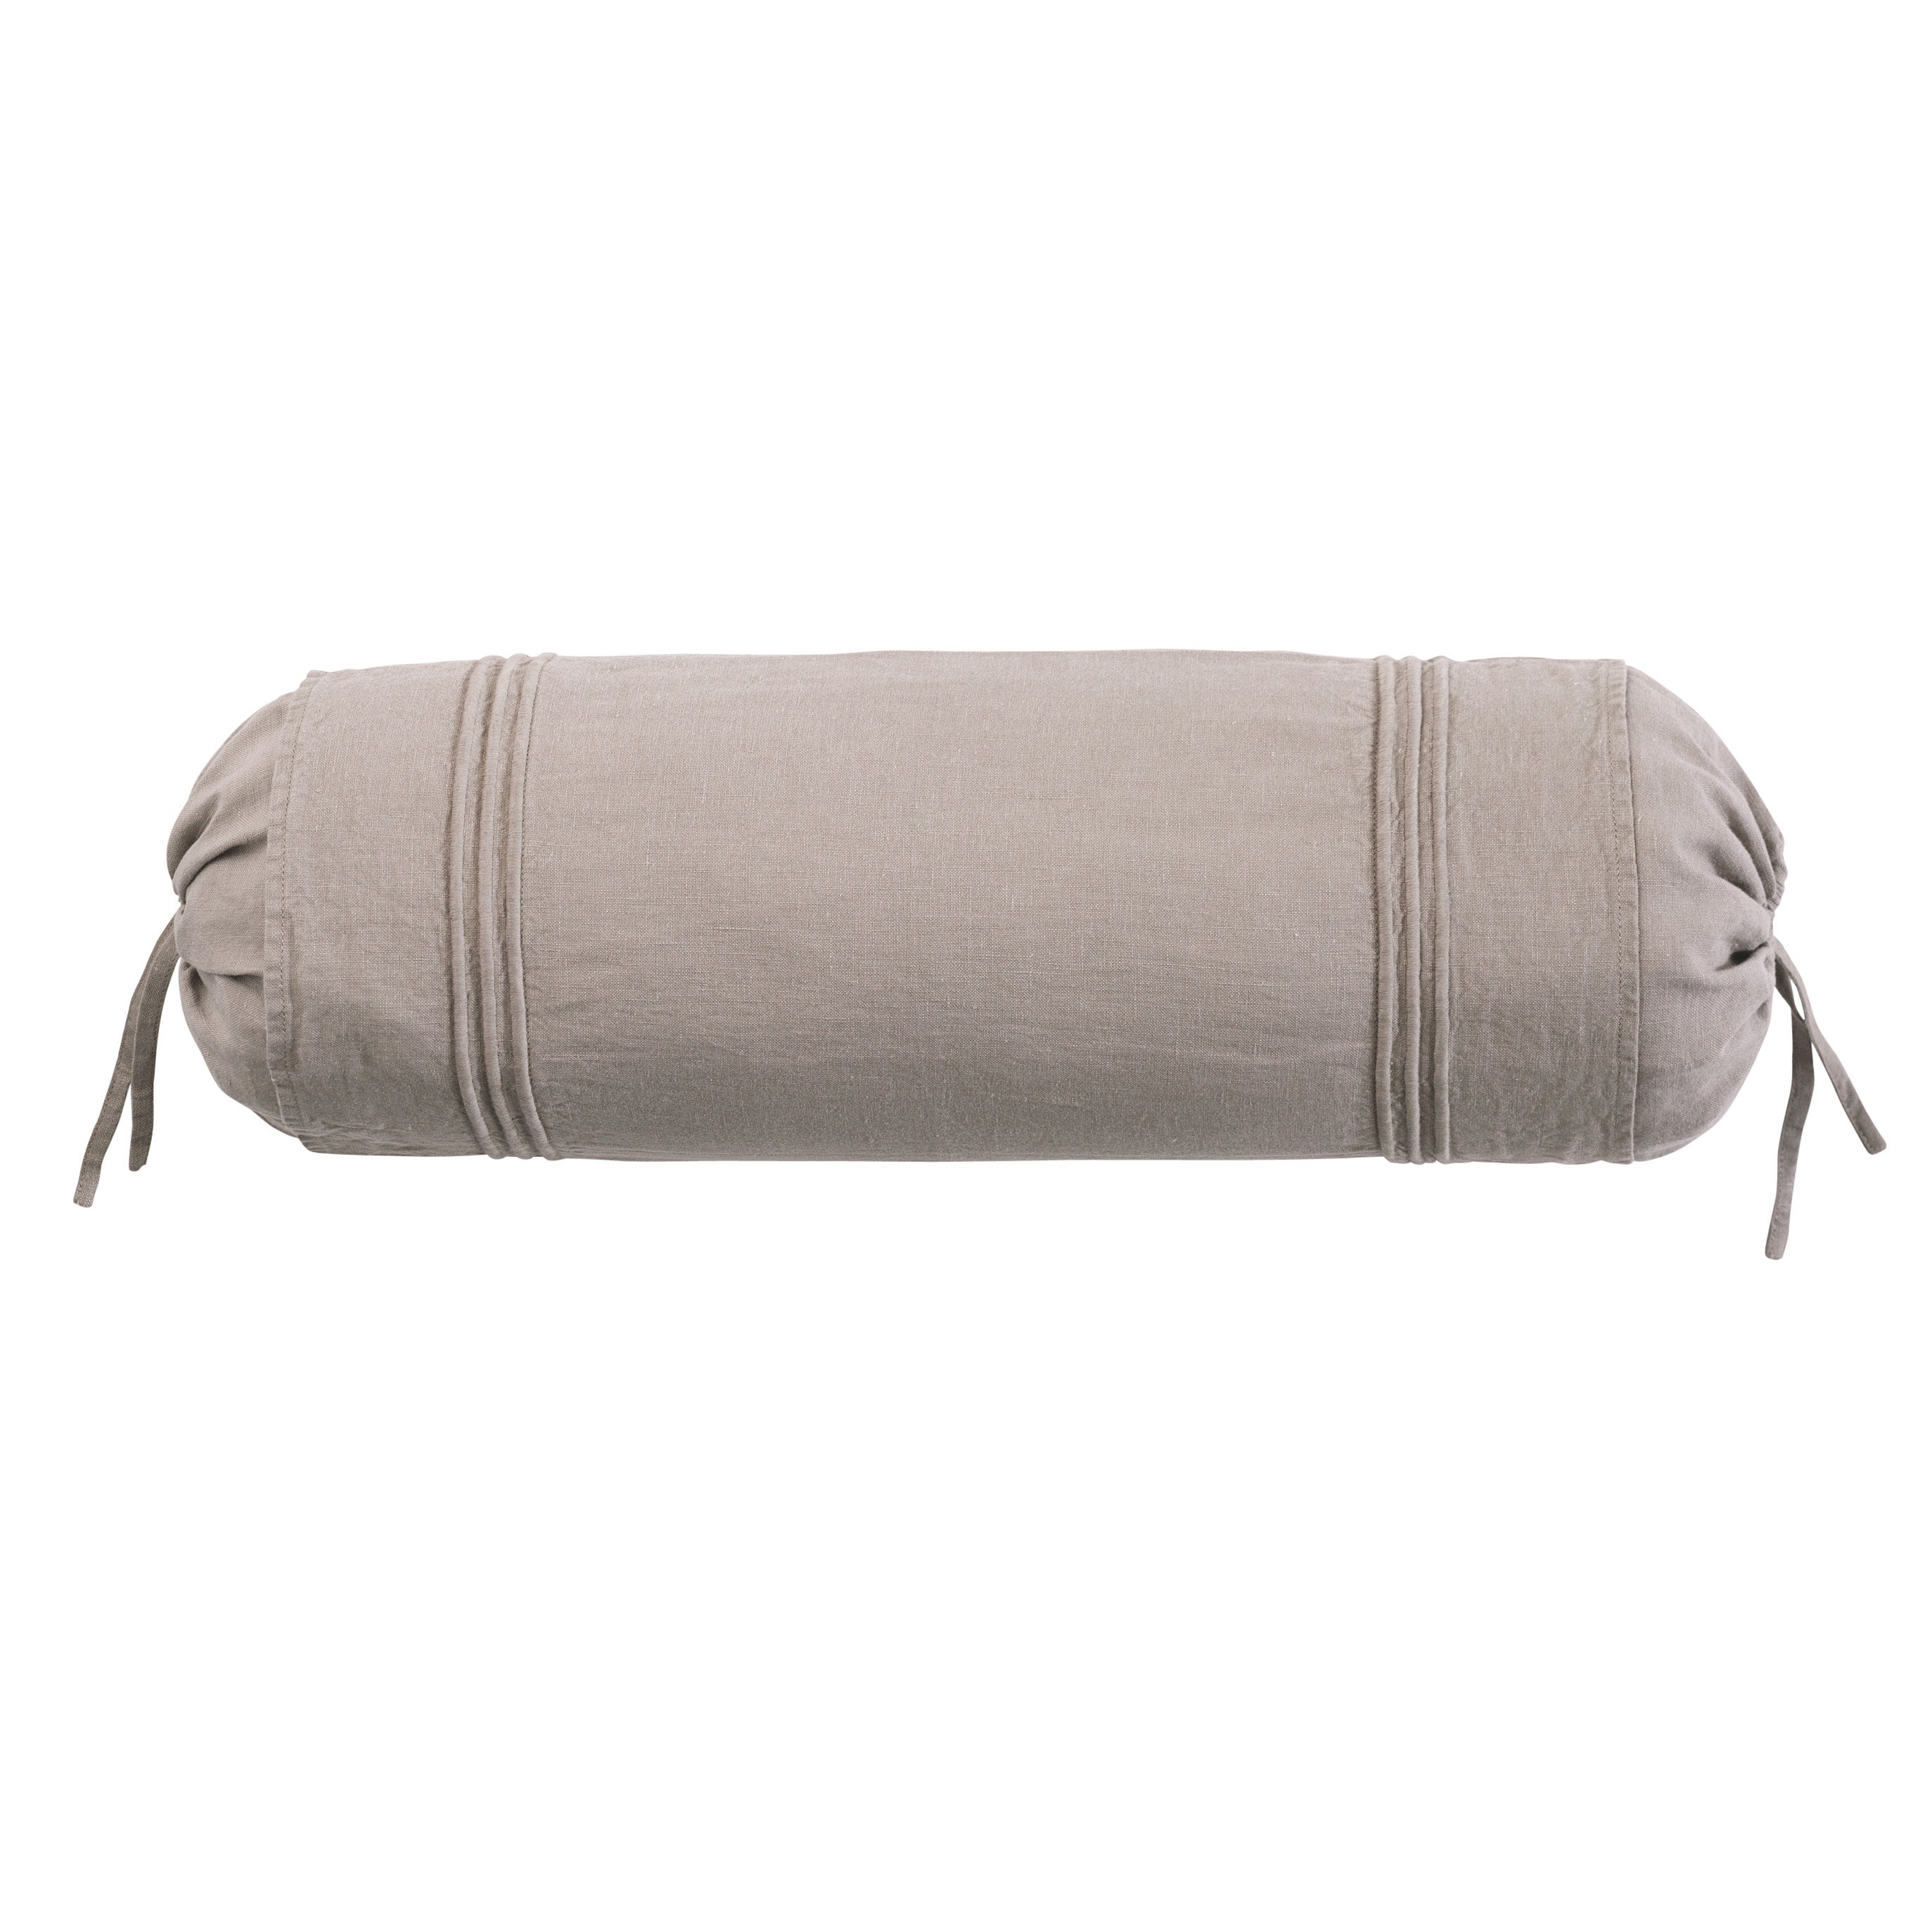 Roxbury Park Baratto Linen Prarie Neck Roll Decorative Pillow at Sears.com